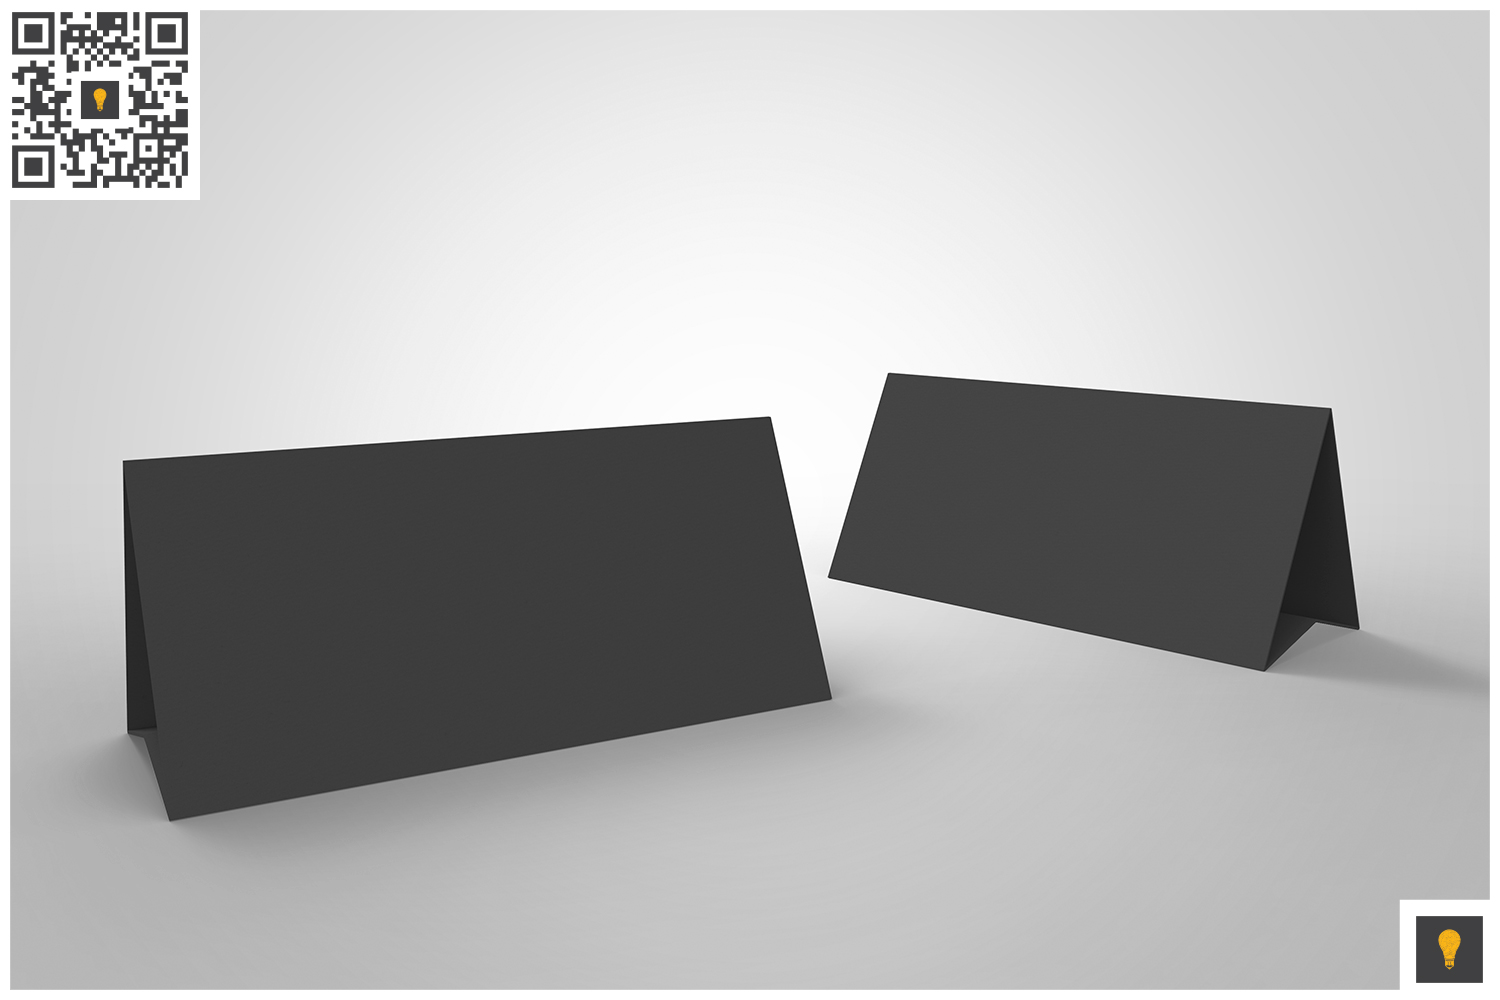 Table Tent 3D Render example image 6